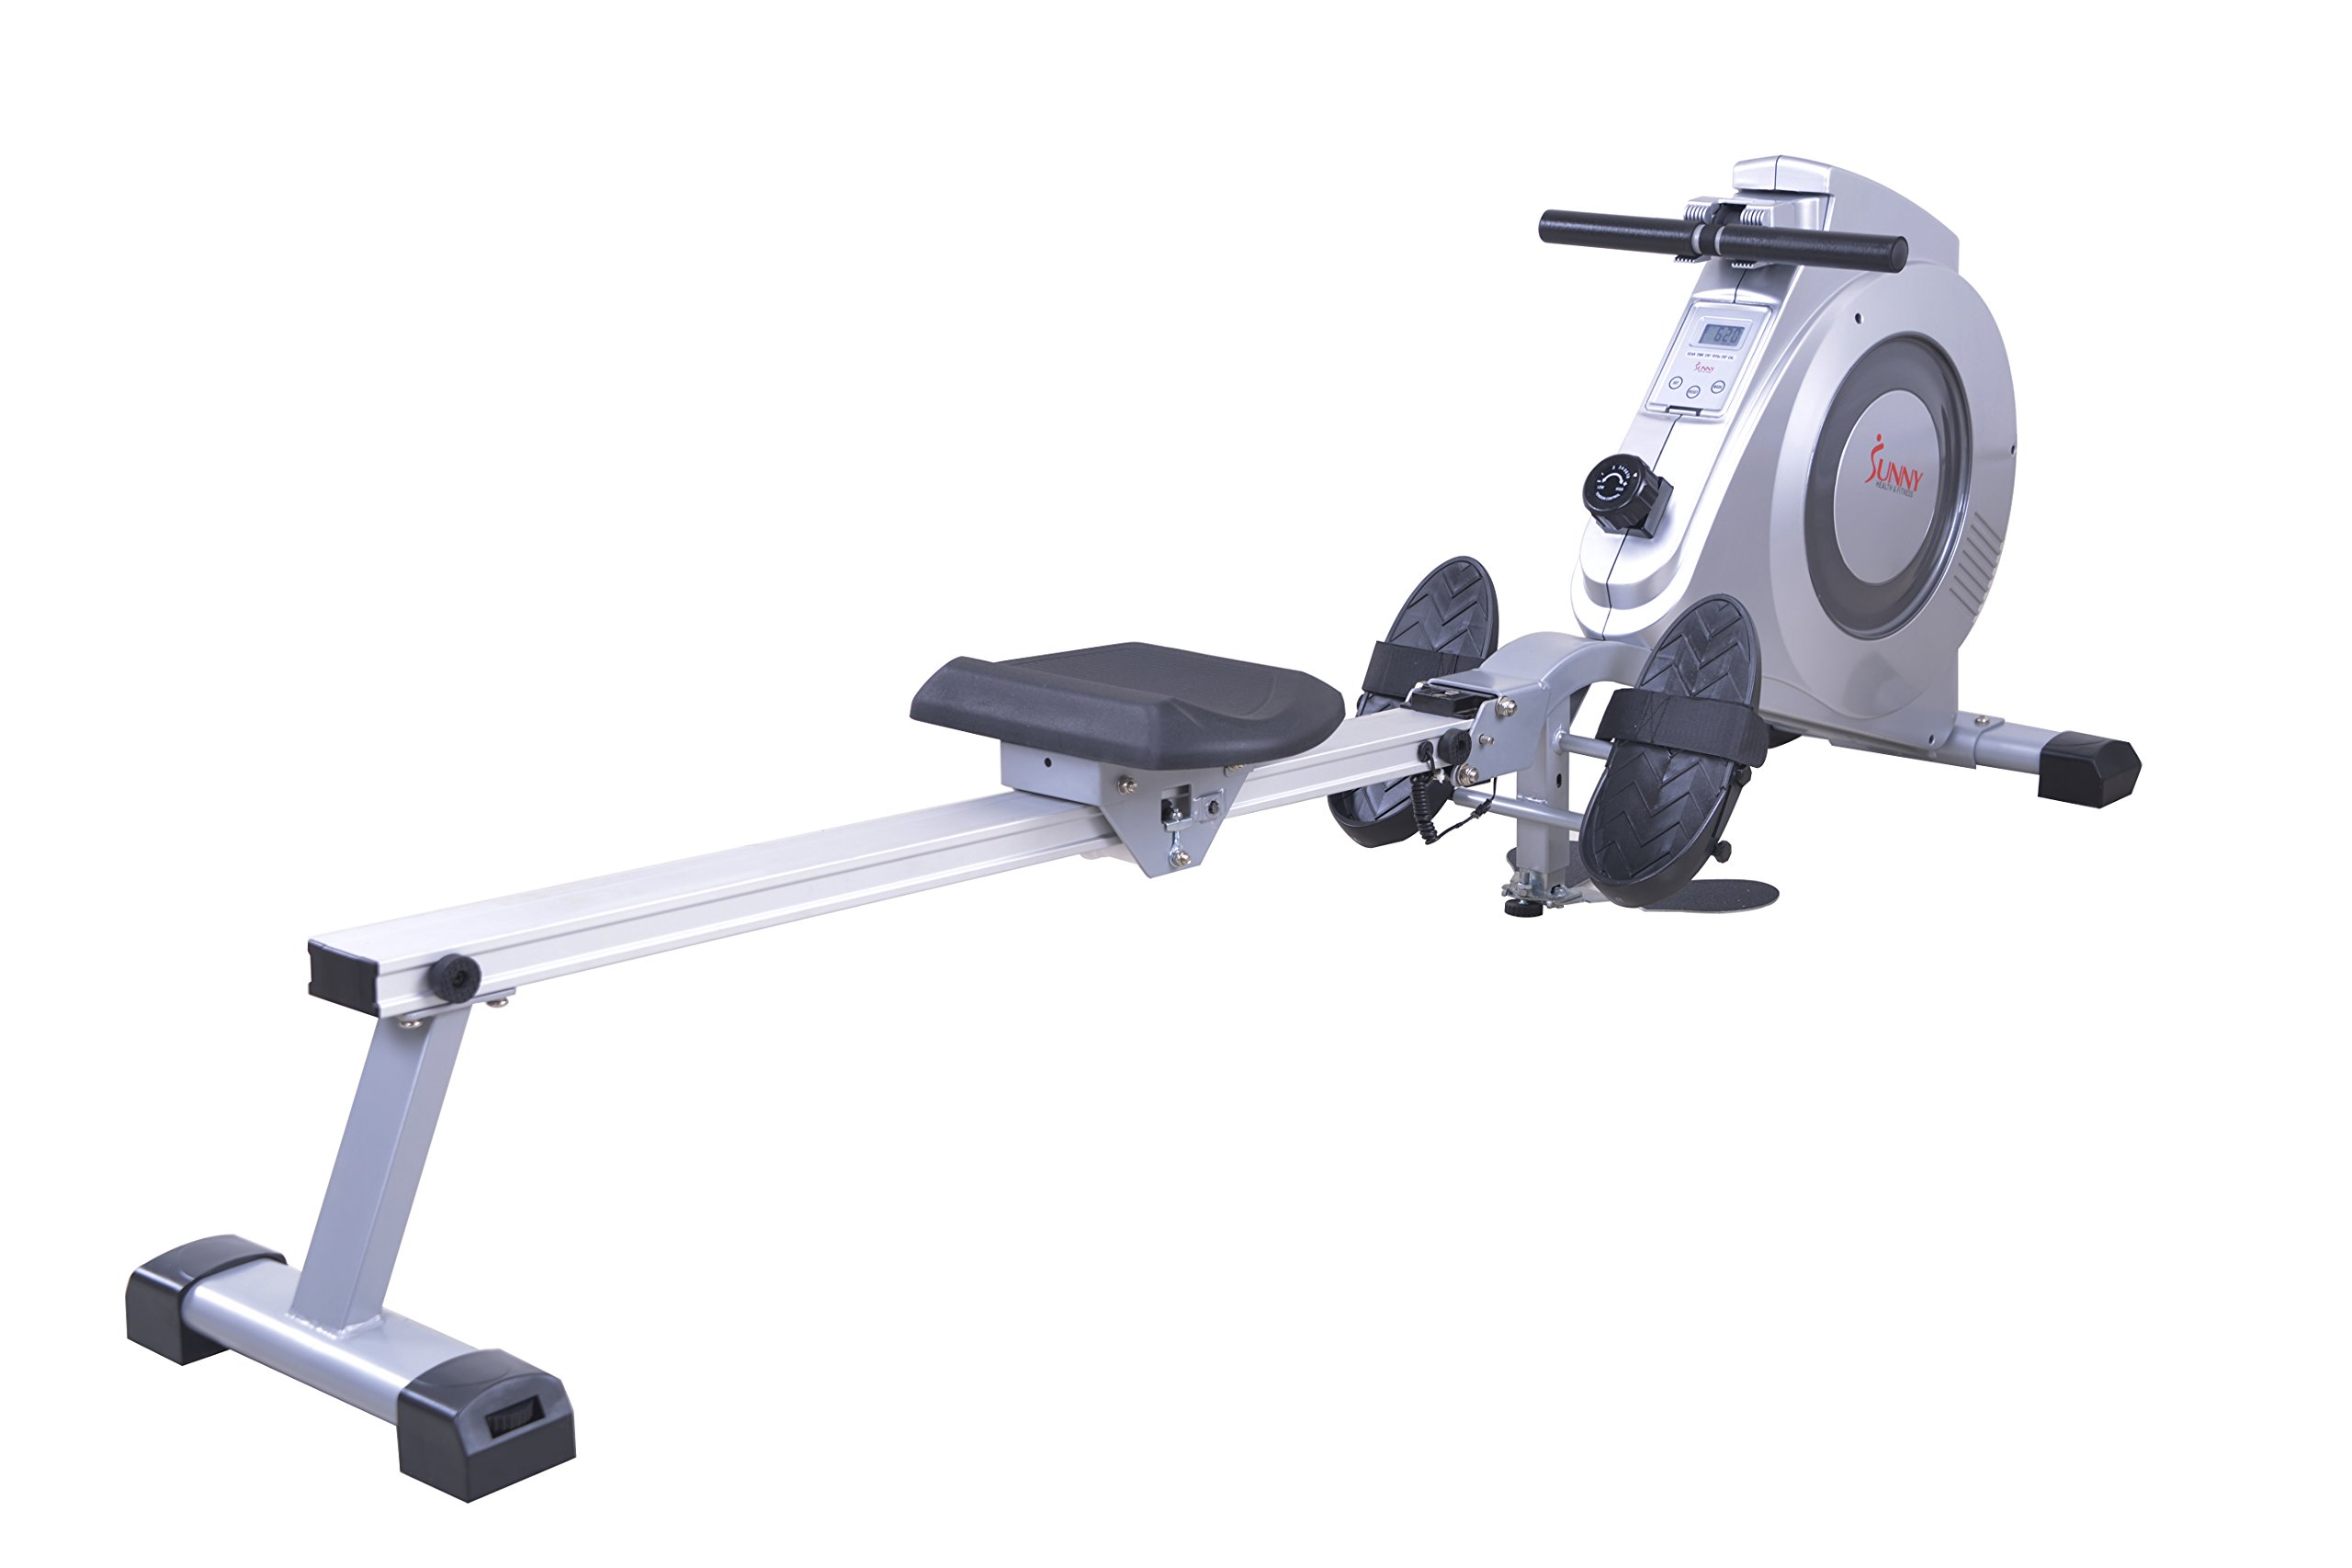 Sunny Health & Fitness SF-RW5612 Dual Function Rowing Machine Rower w/ LCD Monitor by Sunny Health & Fitness